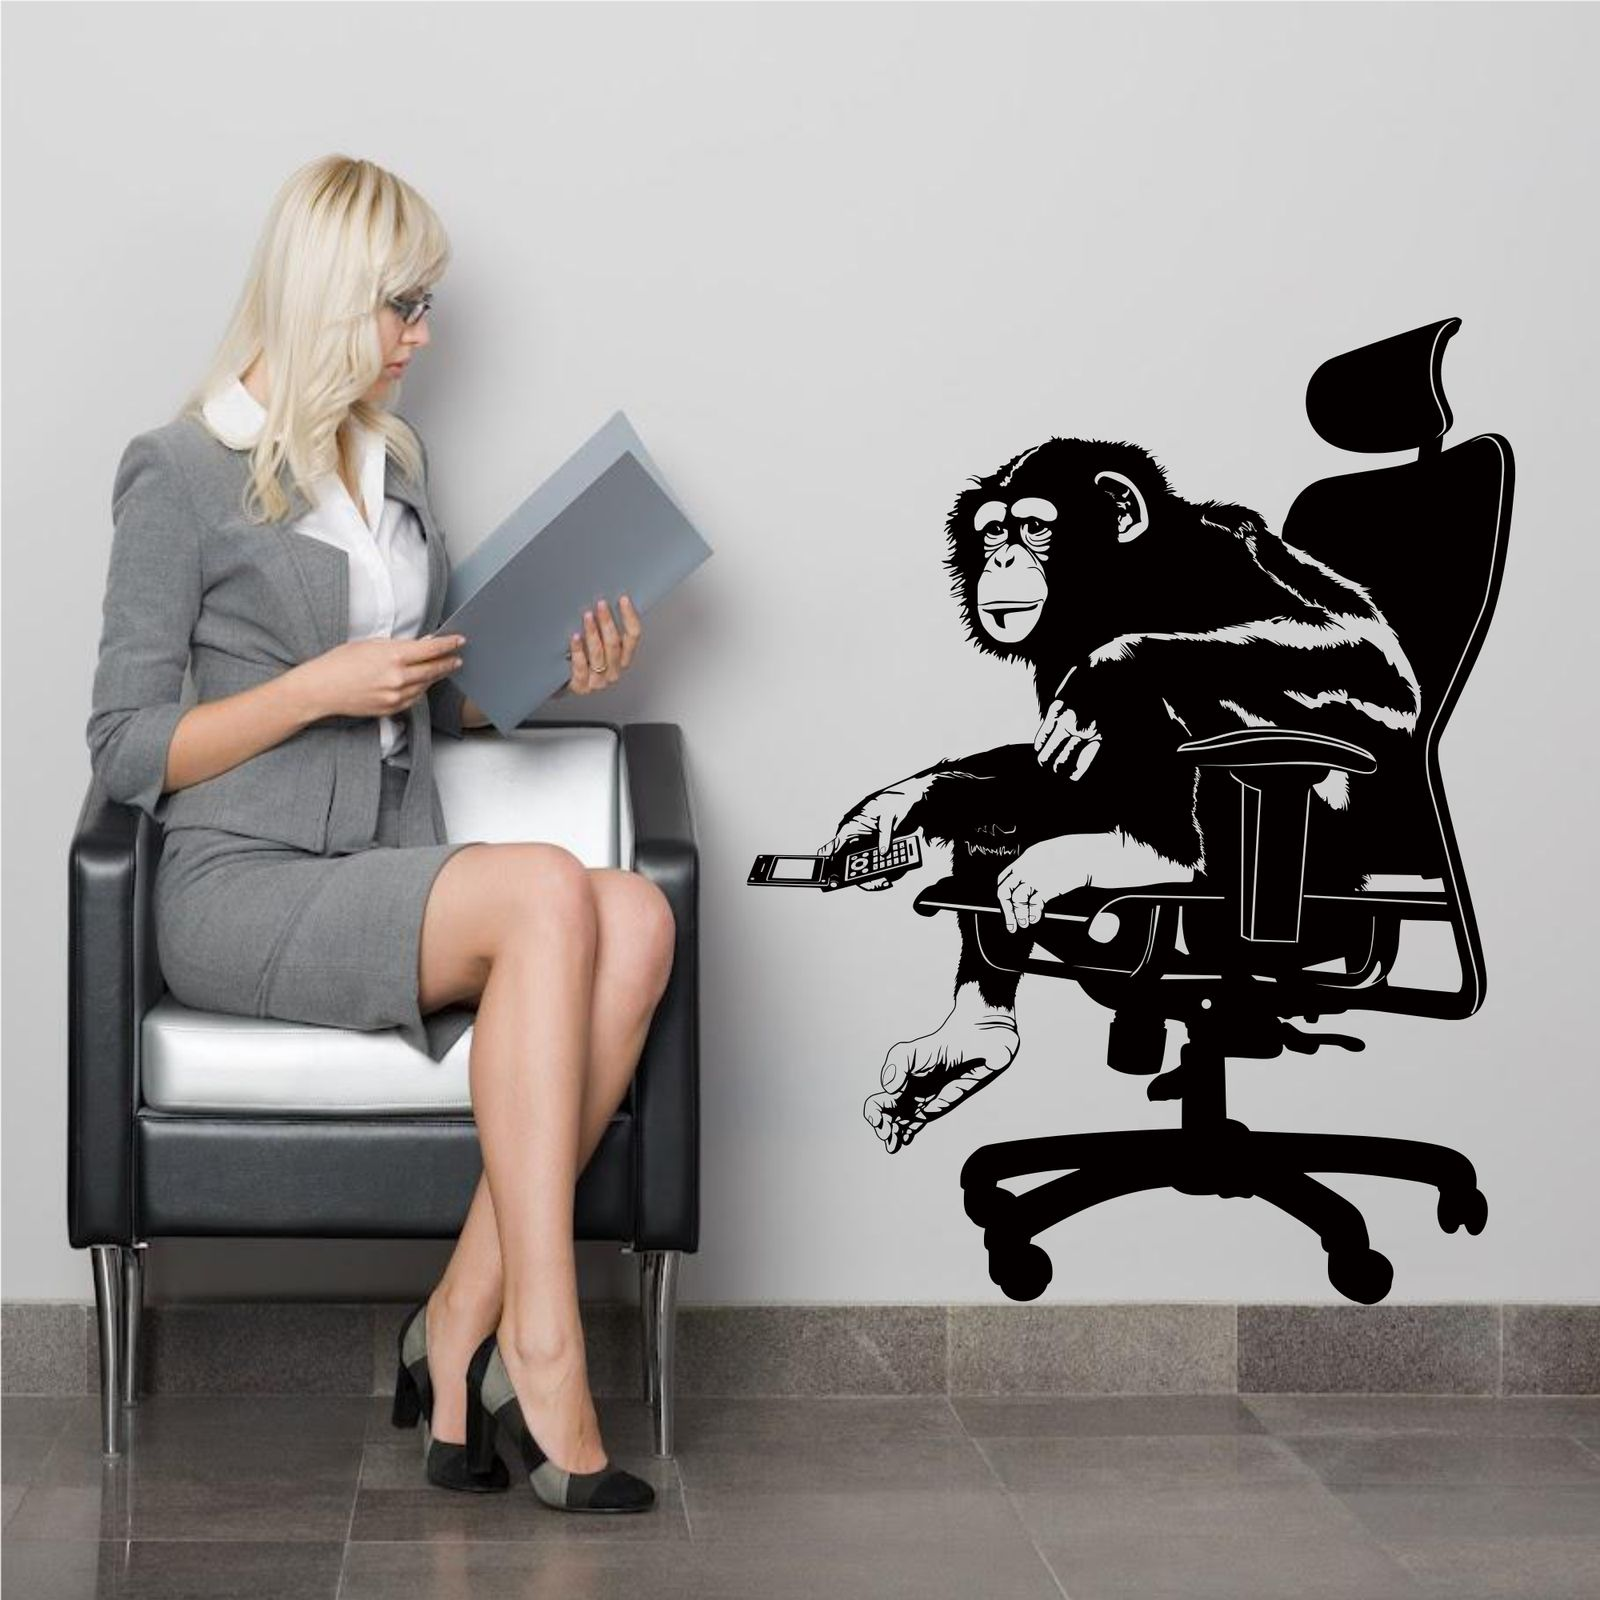 Office monkey chimp animal wall art wall sticker decal for Tattoo shops hiring front desk